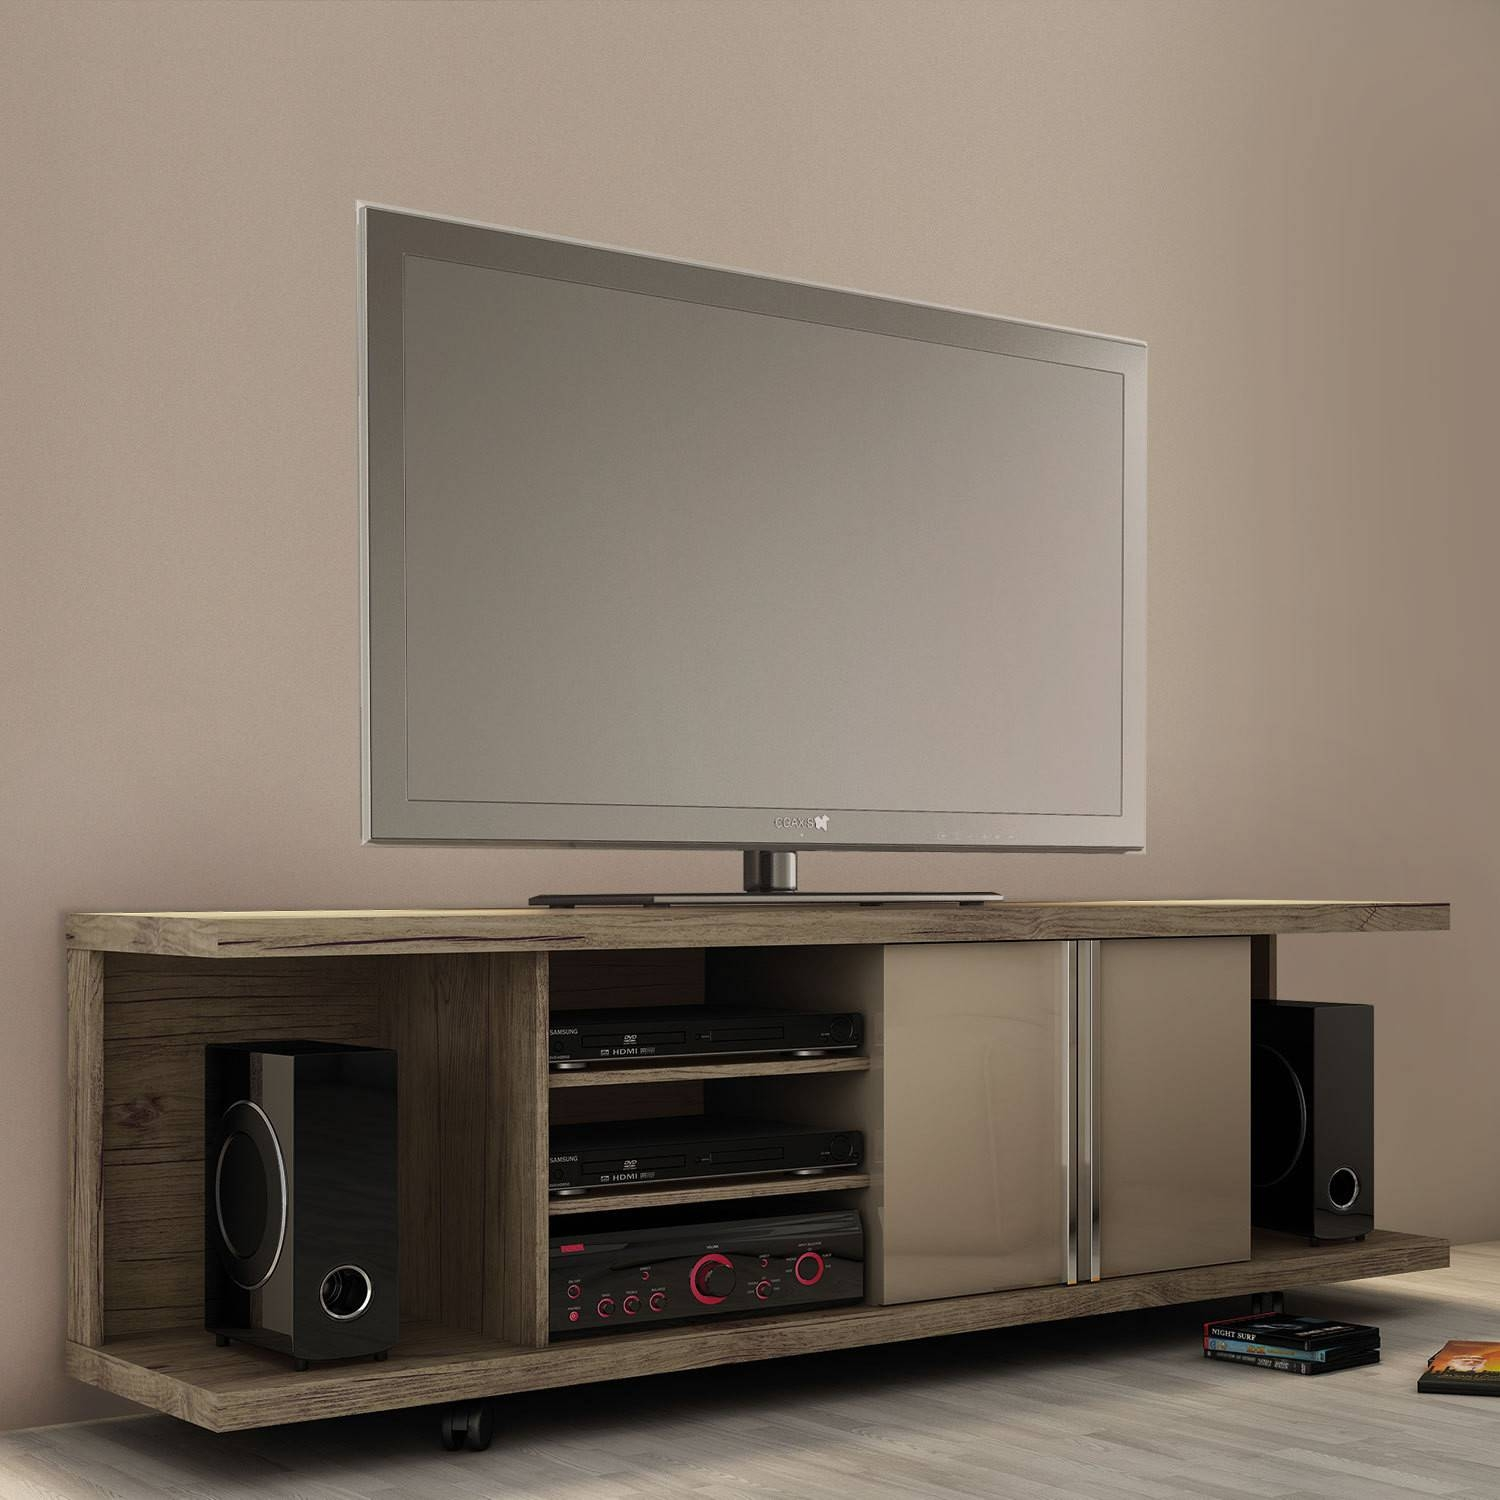 Enchanting Fancy Tv Stands Furniture Pics Decoration Ideas with Fancy Tv Stands (Image 3 of 15)